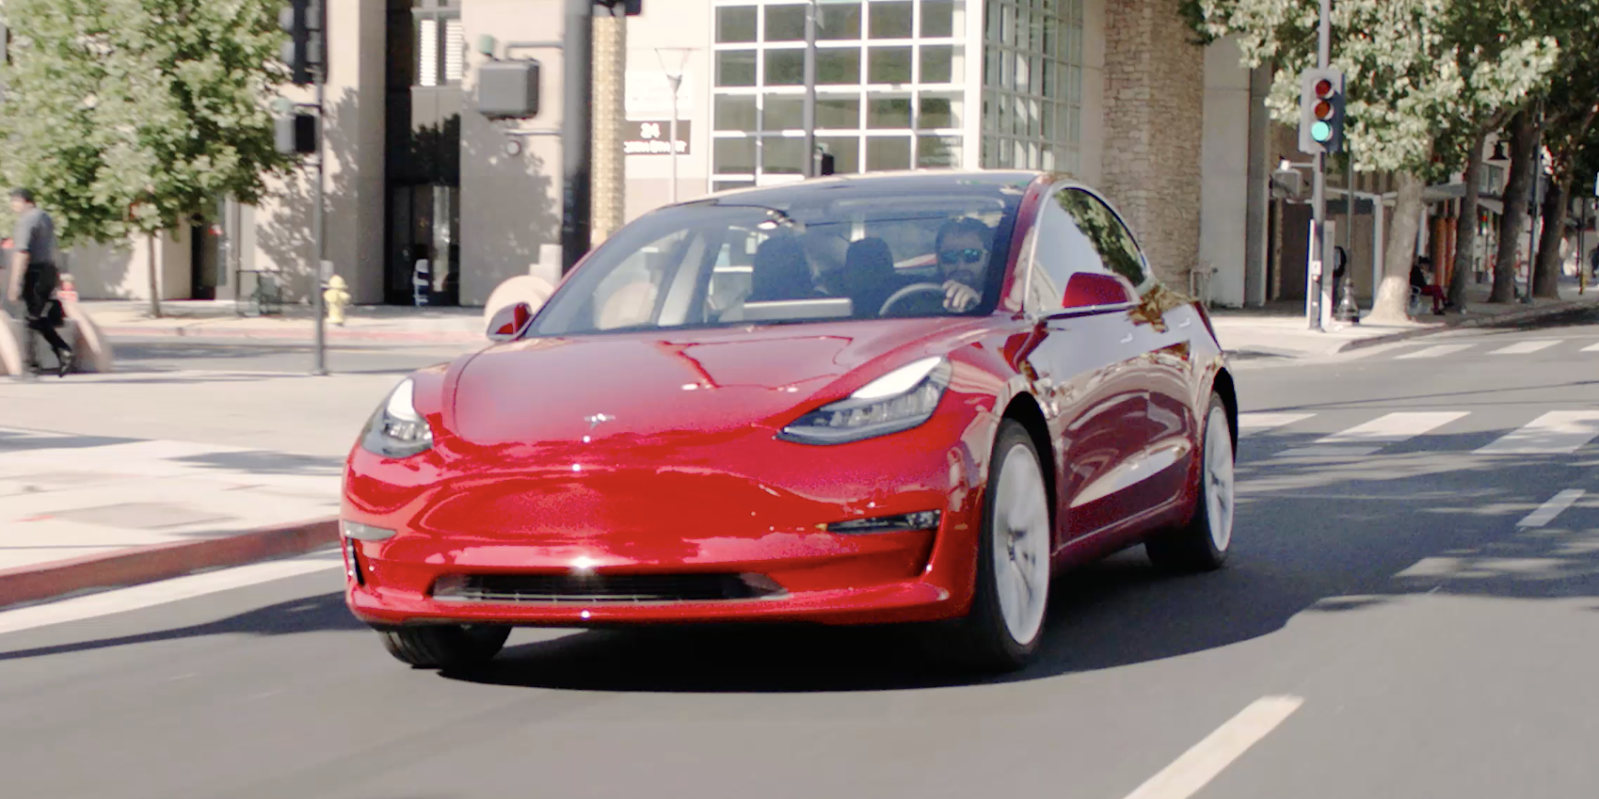 Tesla Model 3 to have best-in-class depreciation, report says